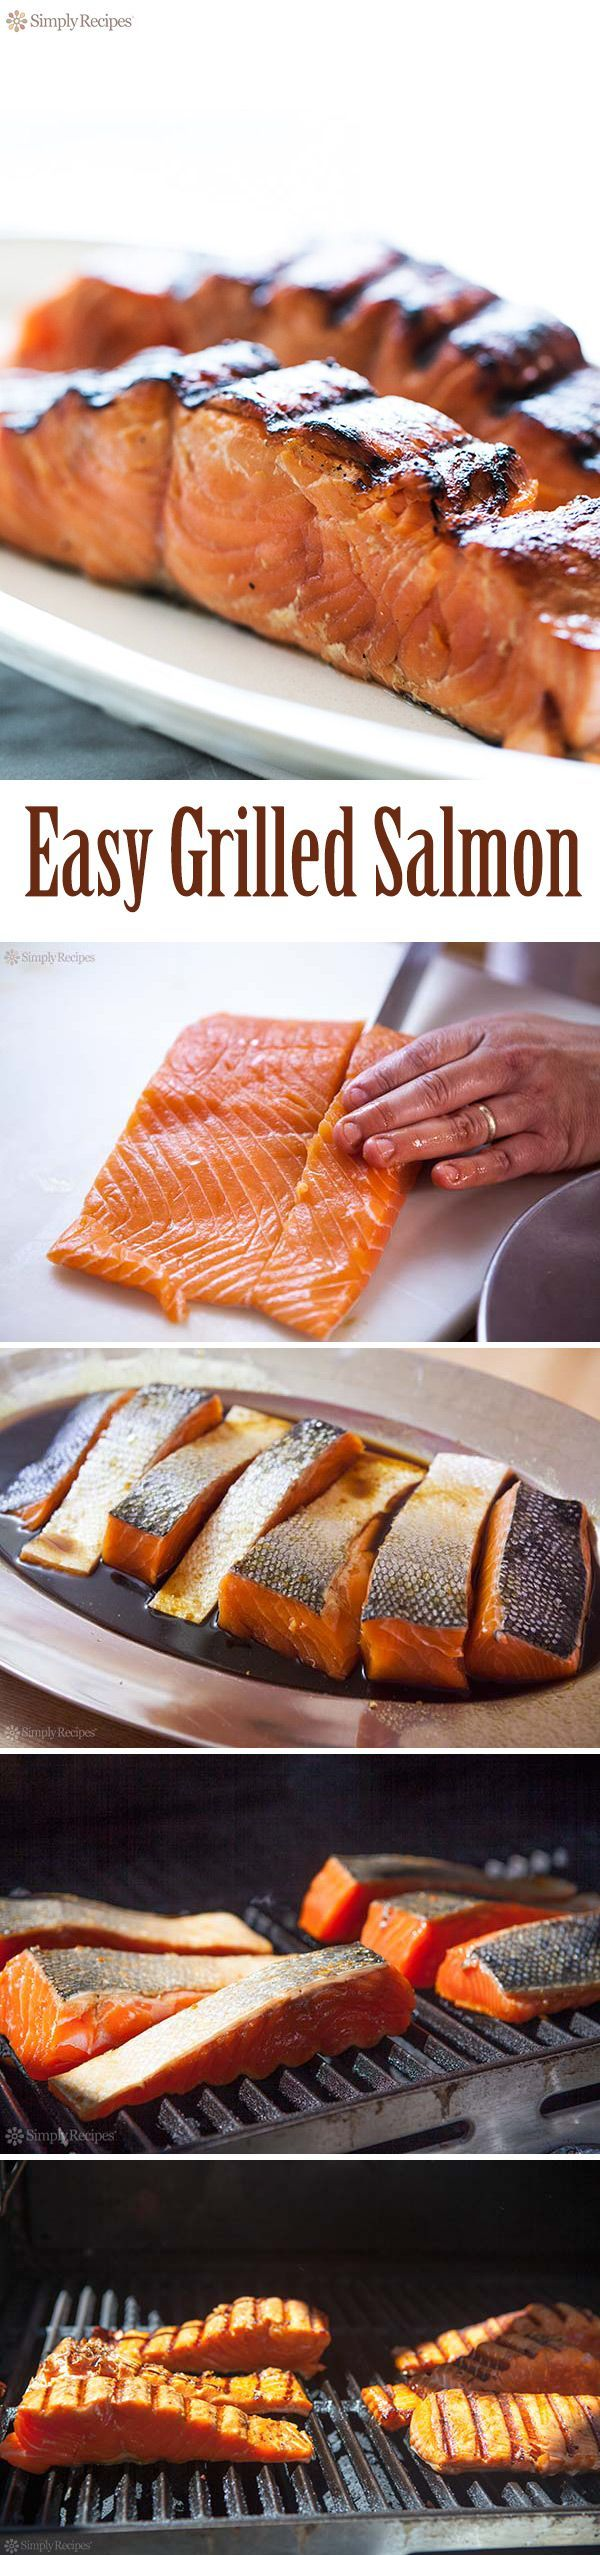 Grilling Salmon Is Easy! Especially With These Tips On How To Grill Them  Perfectly Every